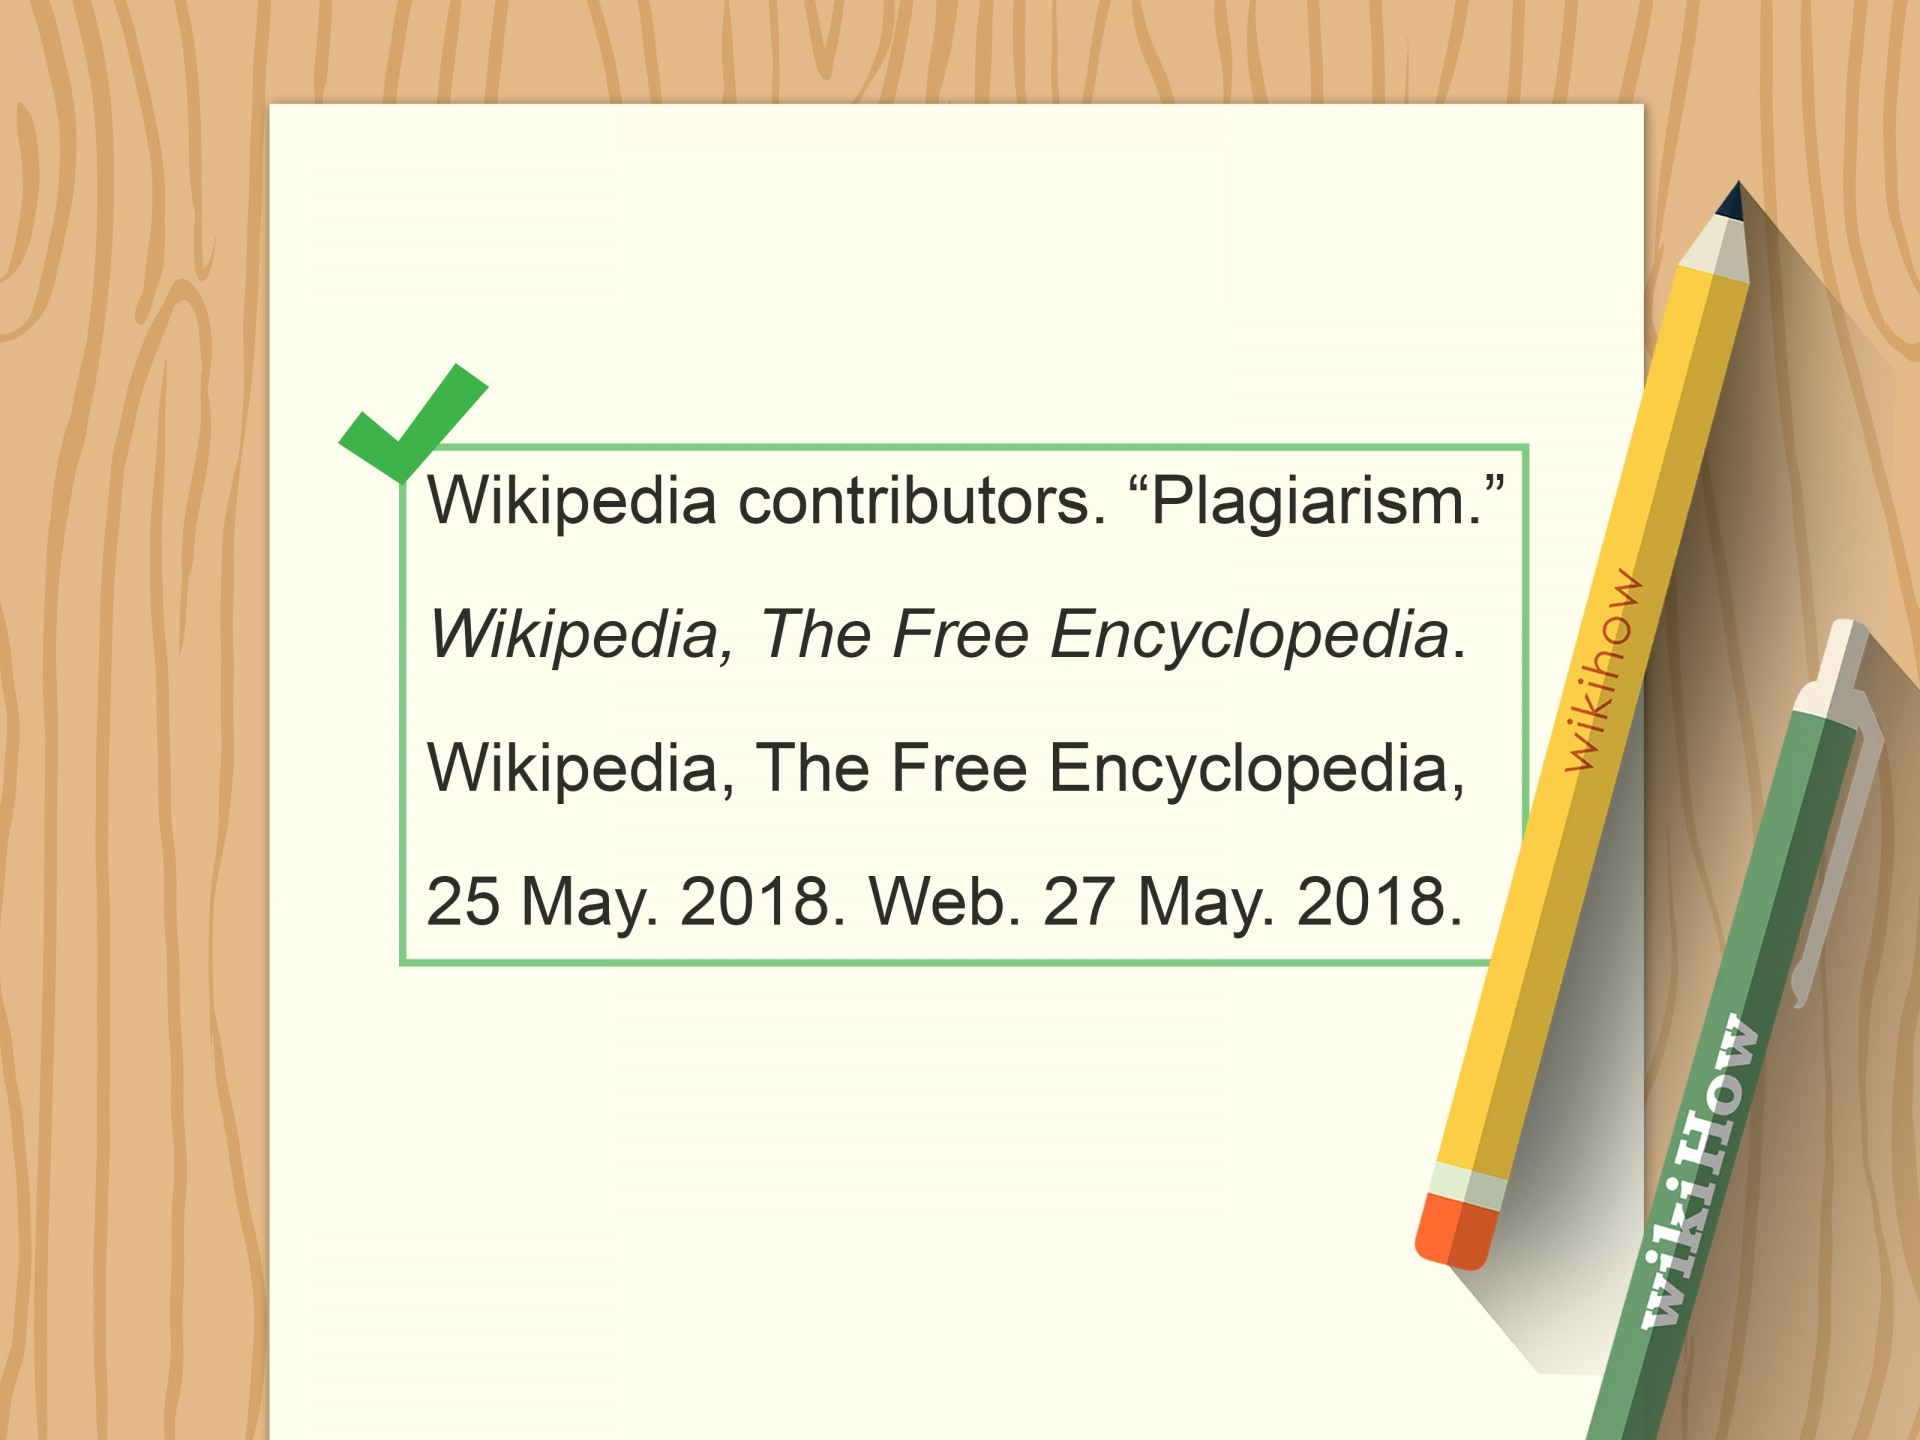 017 Mla Essay Citation Cite Wikipedia Article In Format Step Fantastic Within Book Example 1920